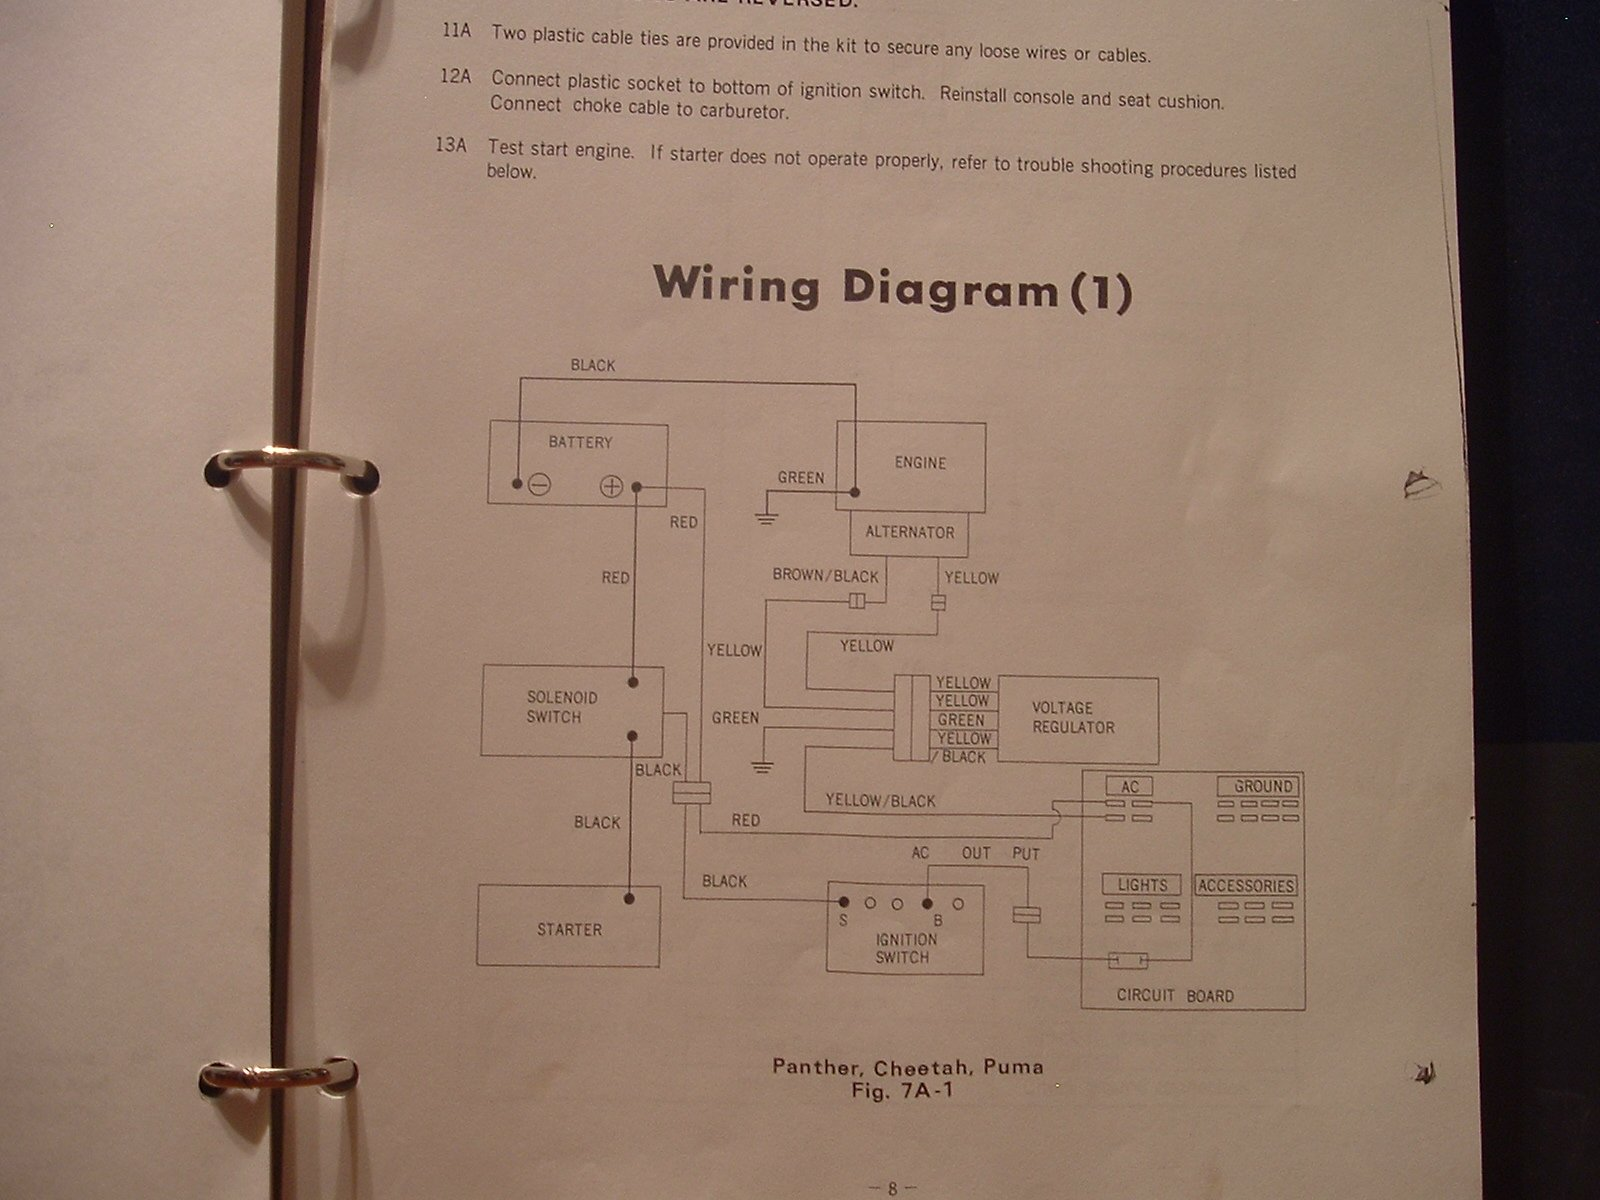 Wiring Diagram 1972 Arctic Cat Puma 74depo Aquade